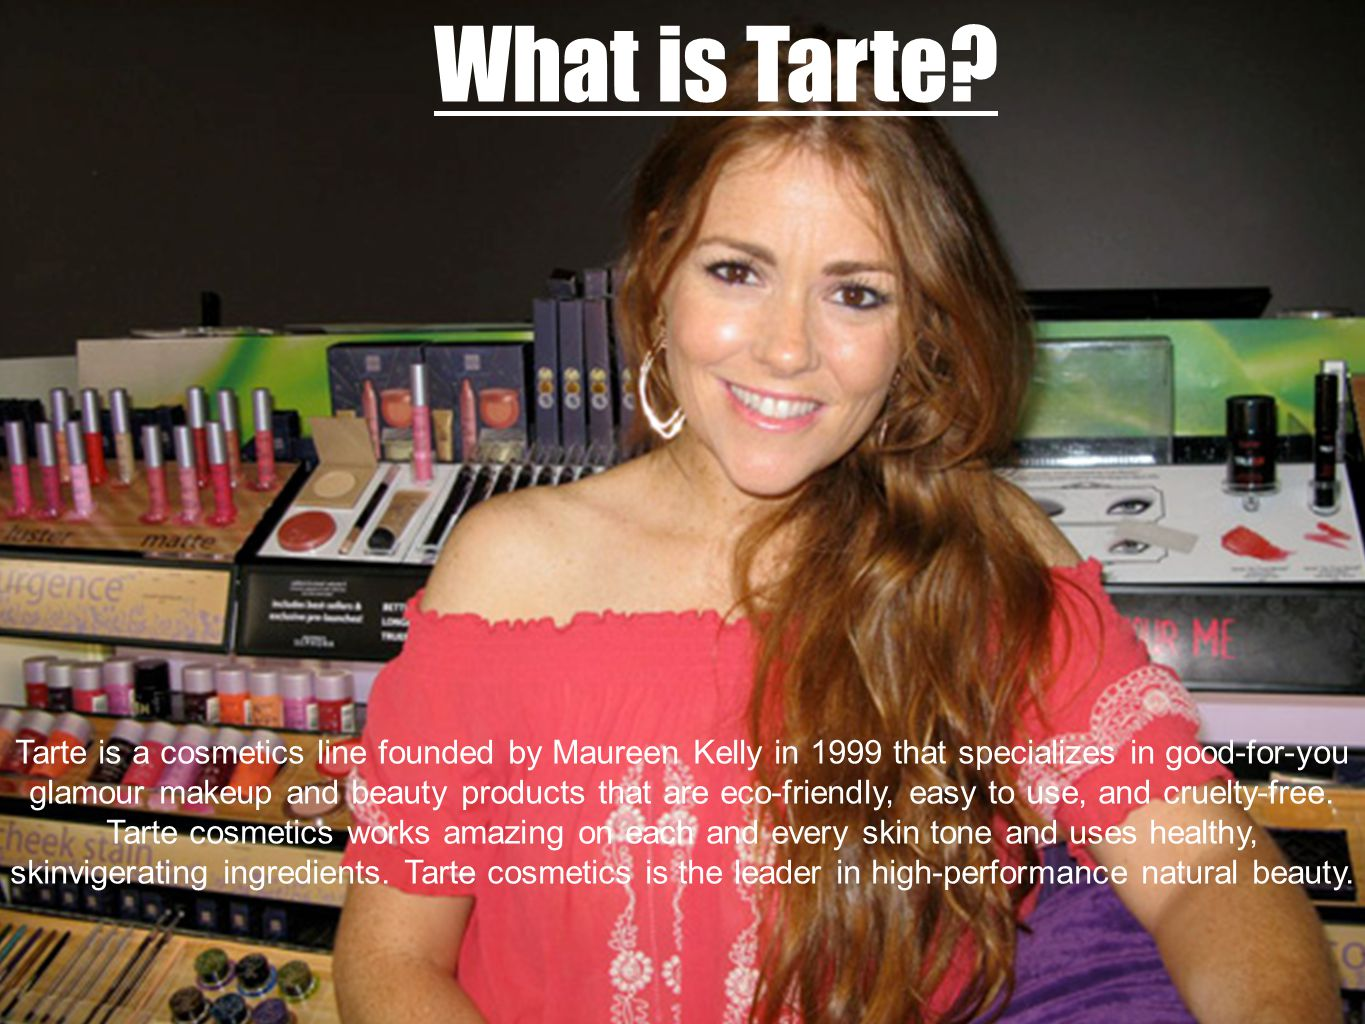 What is Tarte? Tarte is a cosmetics line founded by Maureen Kelly in 1999 that specializes in good-for-you glamour makeup and beauty products that are